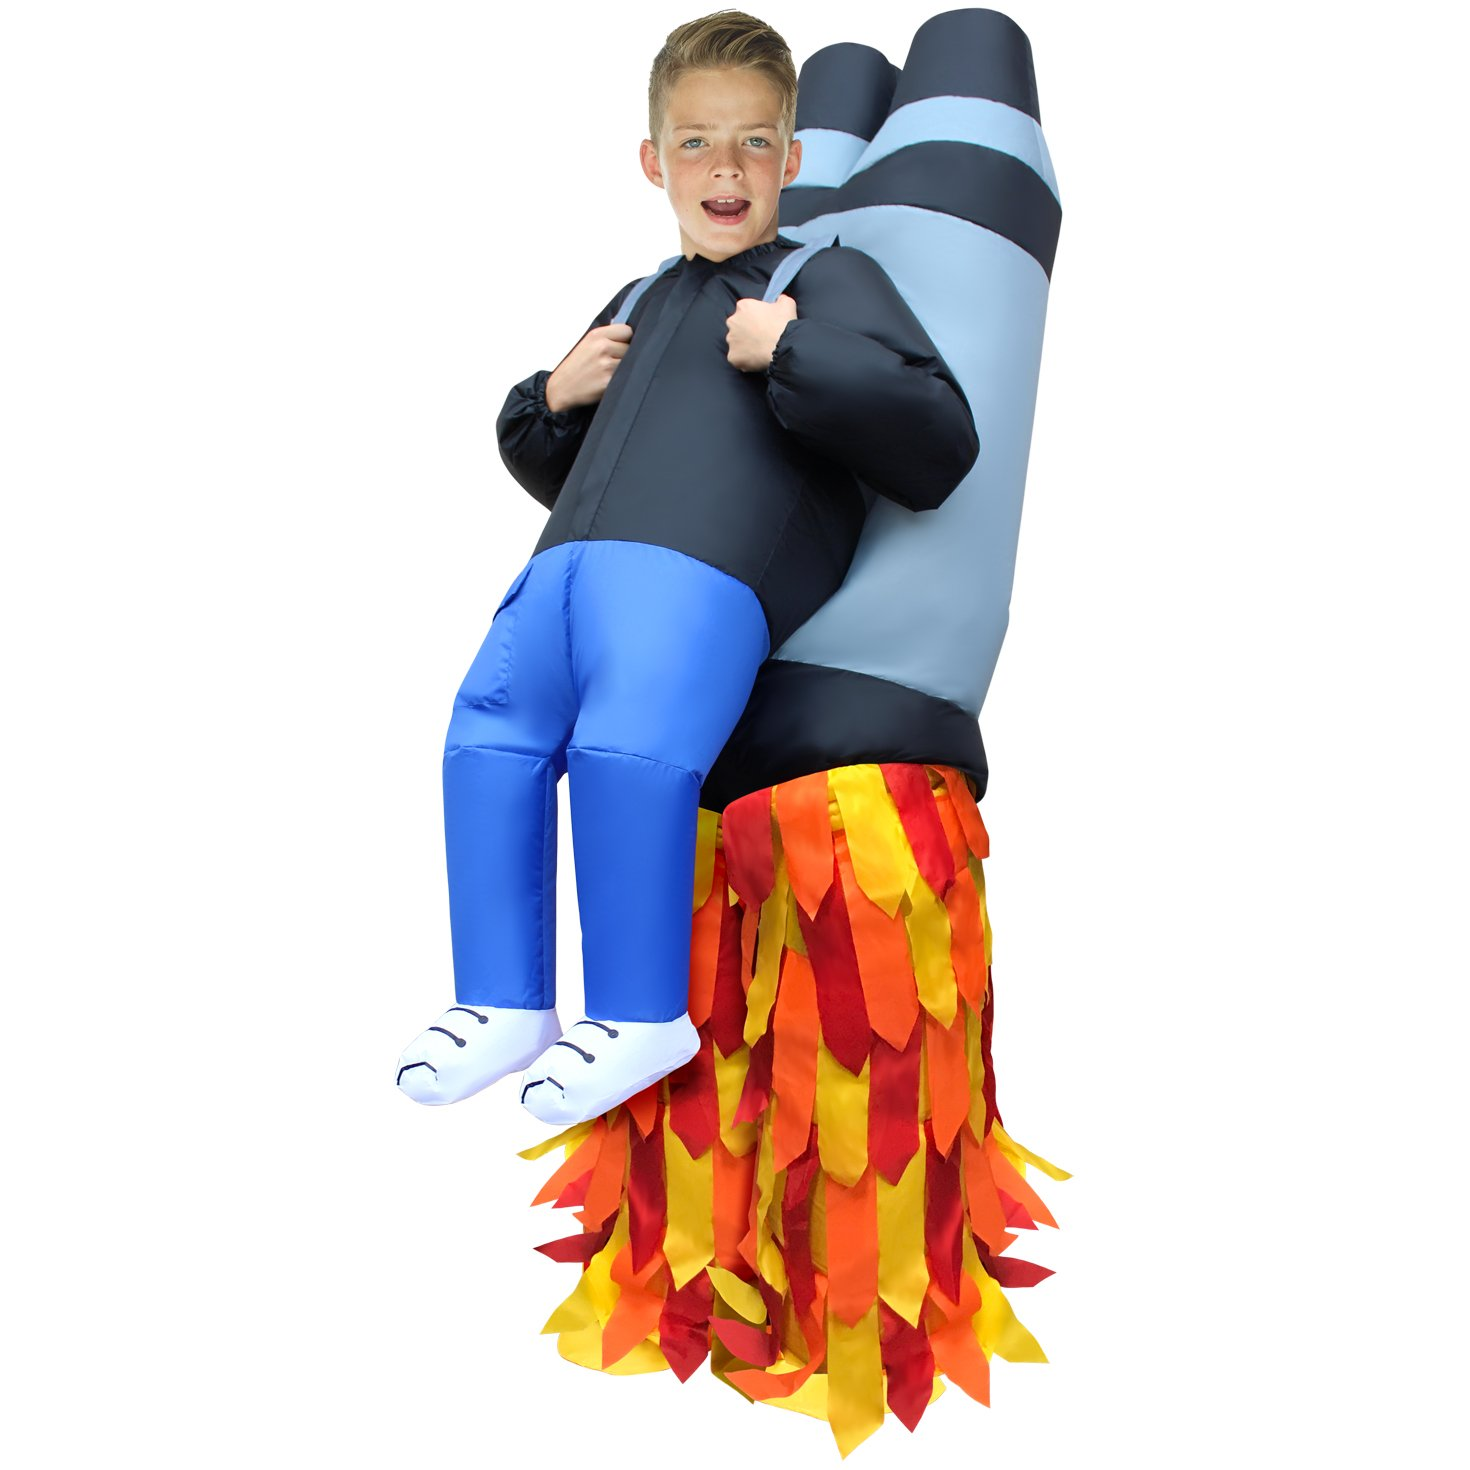 Morph Boys Inflatable Costume, One Size